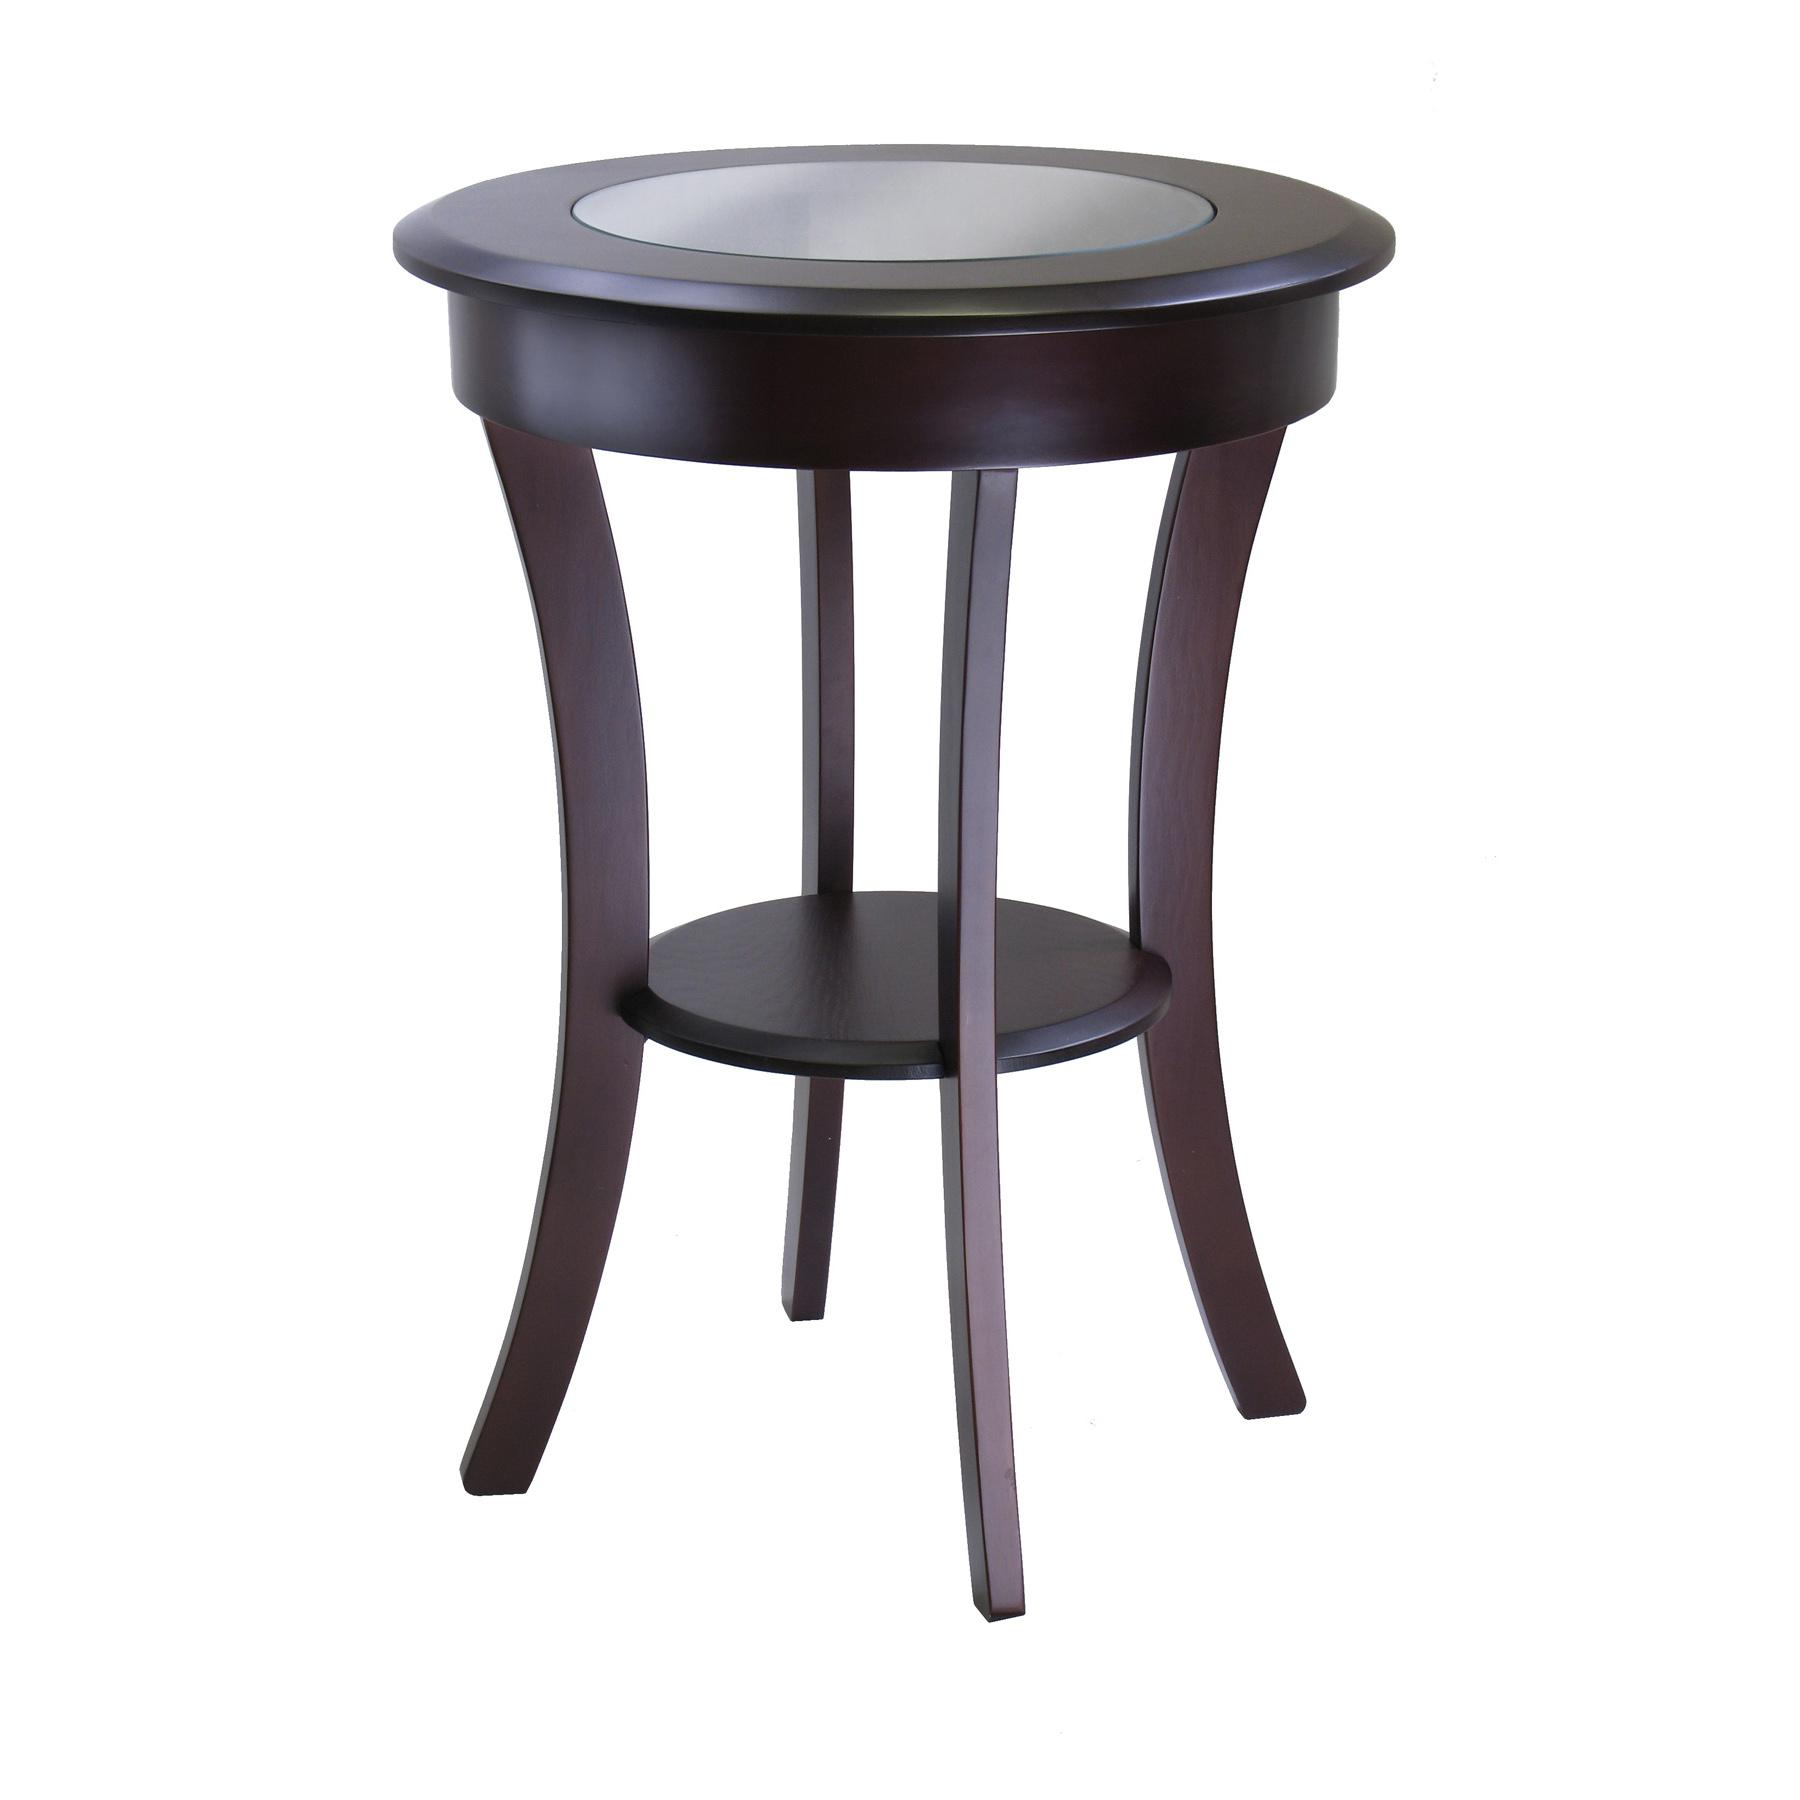 surprising inch tall round accent table decorating patio cover rentals chairs rent tablecloth and tables ideas small for stools covers kitchen cloth full size industrial nest